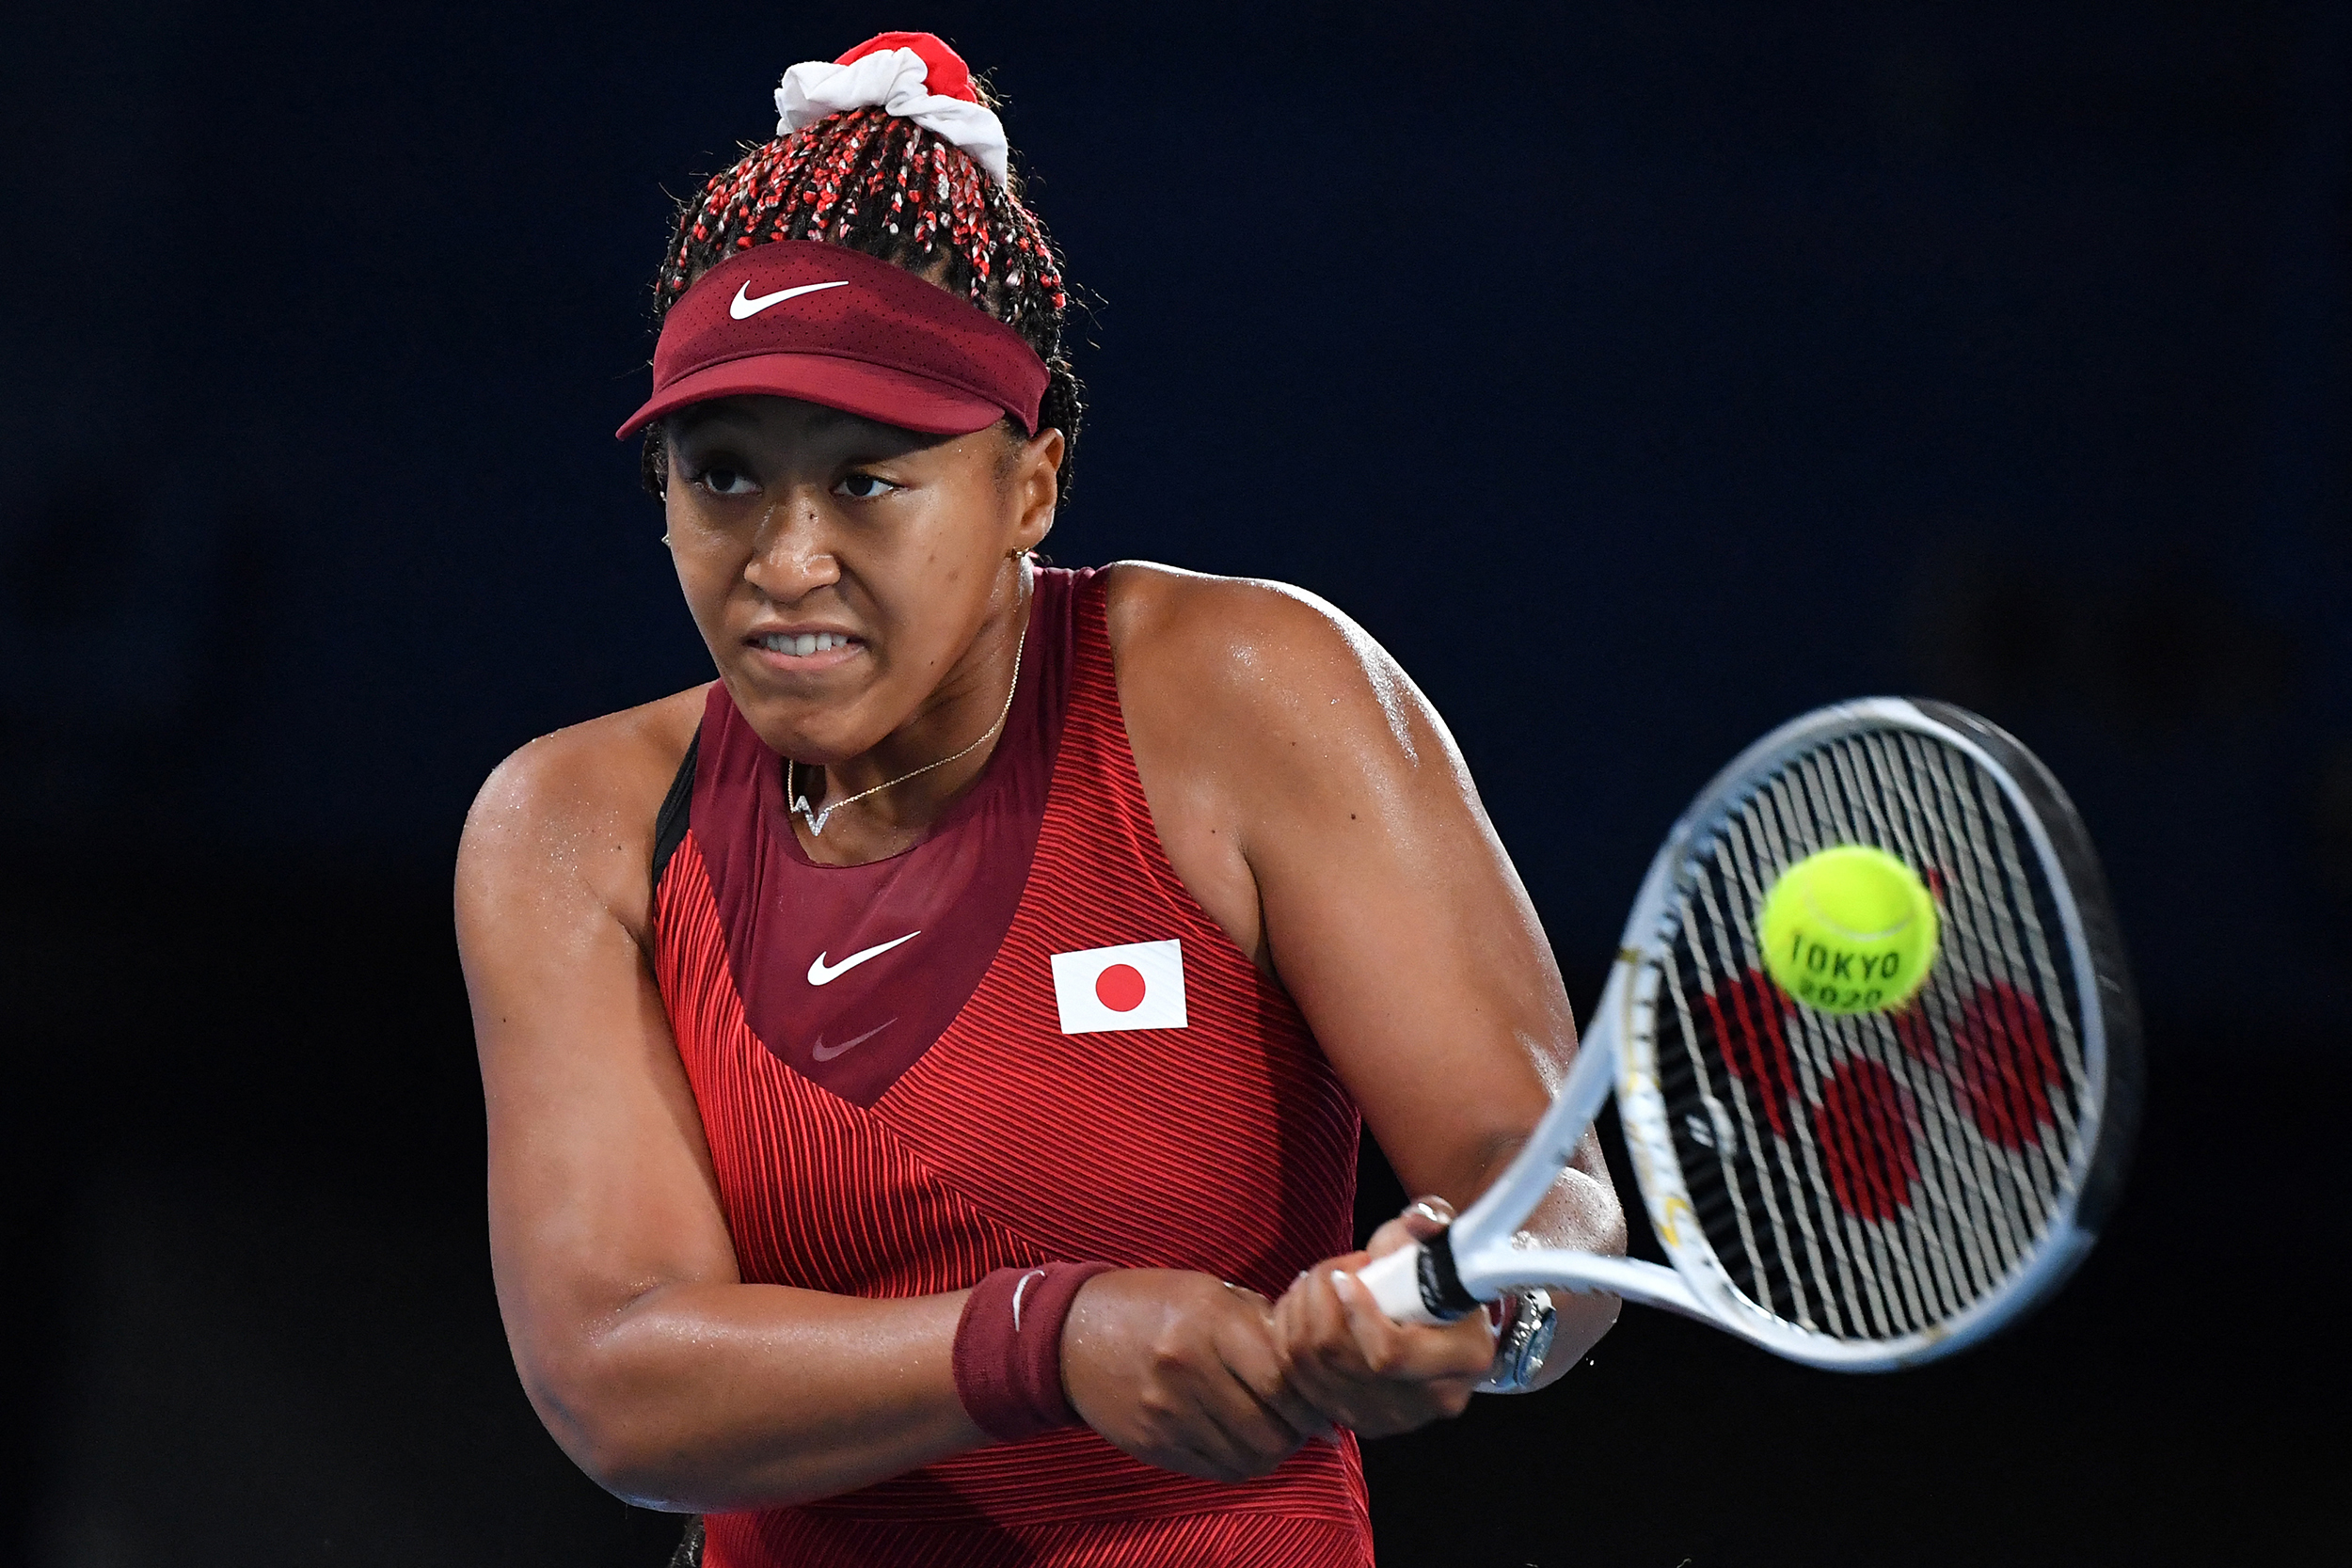 Naomi Osaka steps away from news conference after question on relationship with media